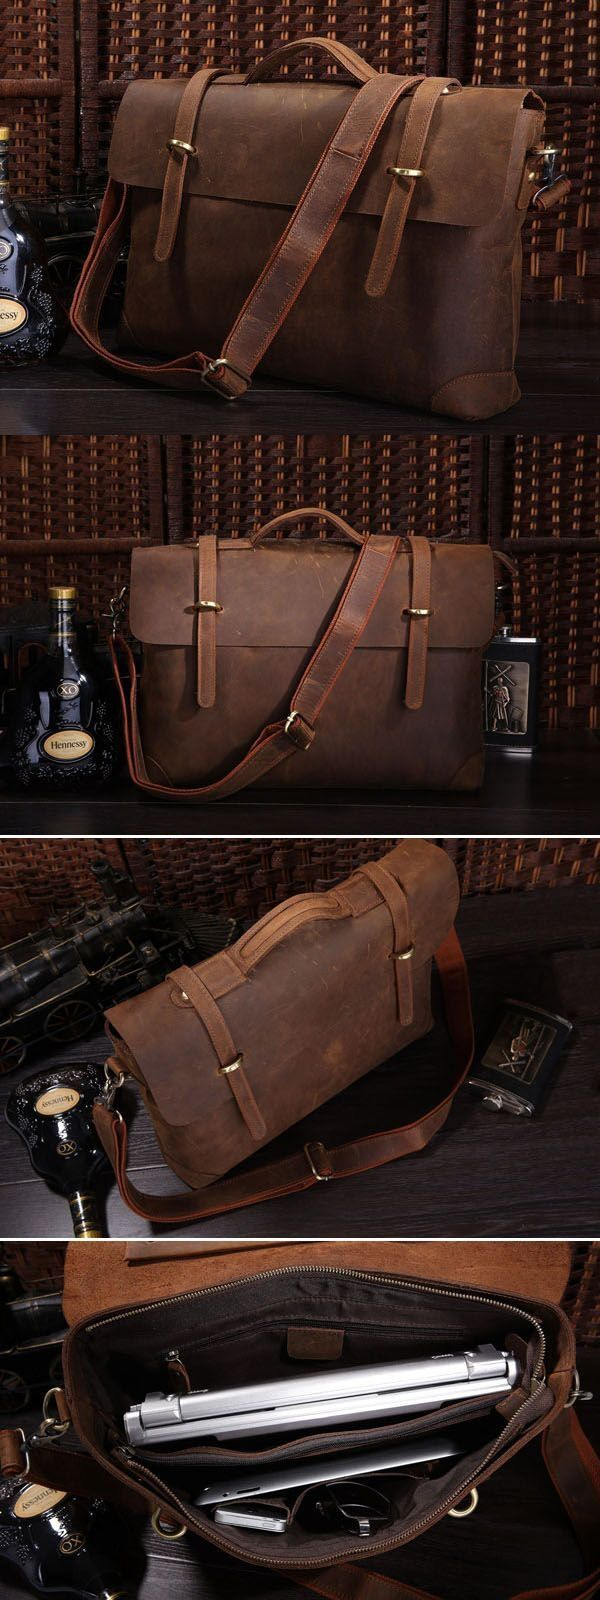 Vintage Crazy Horse Leather Briefcase, Messenger Bag, Laptop Bag, Business Men's Bag 0342